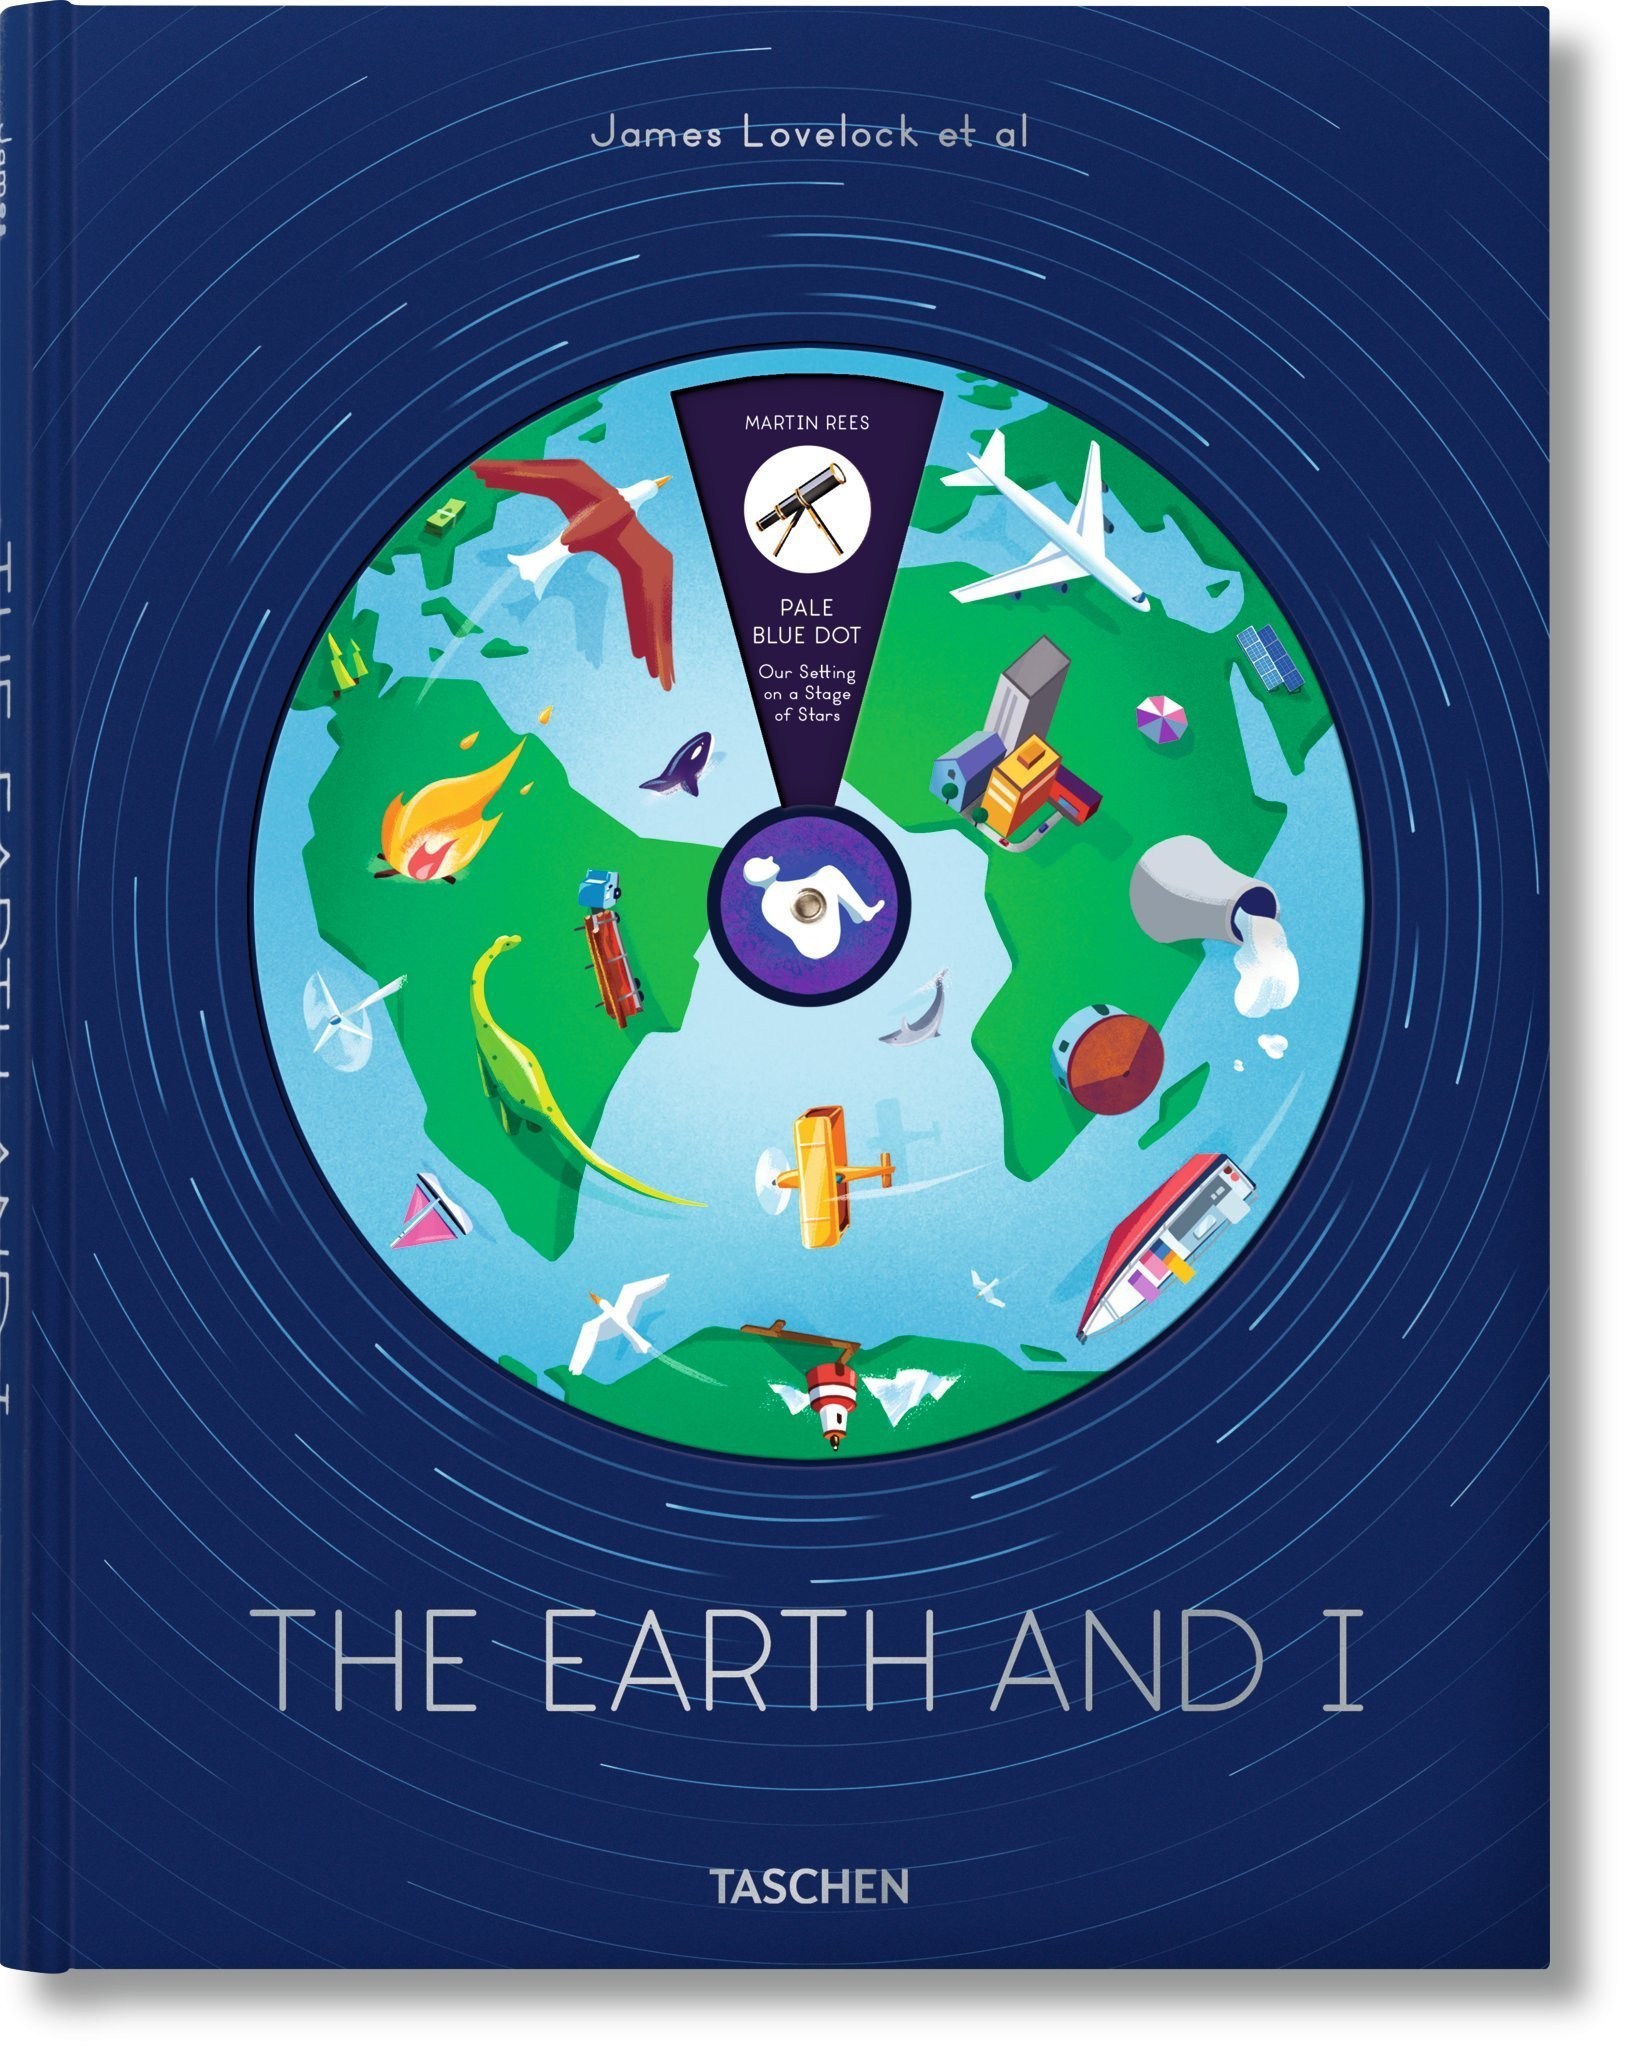 James Lovelock Et Al: The Earth And I: James Lovelock, Jack Hudson, Lisa  Randall, Martin Rees, Edward O Wilson, Eric Kandel: 9783836551113:  Amazon: